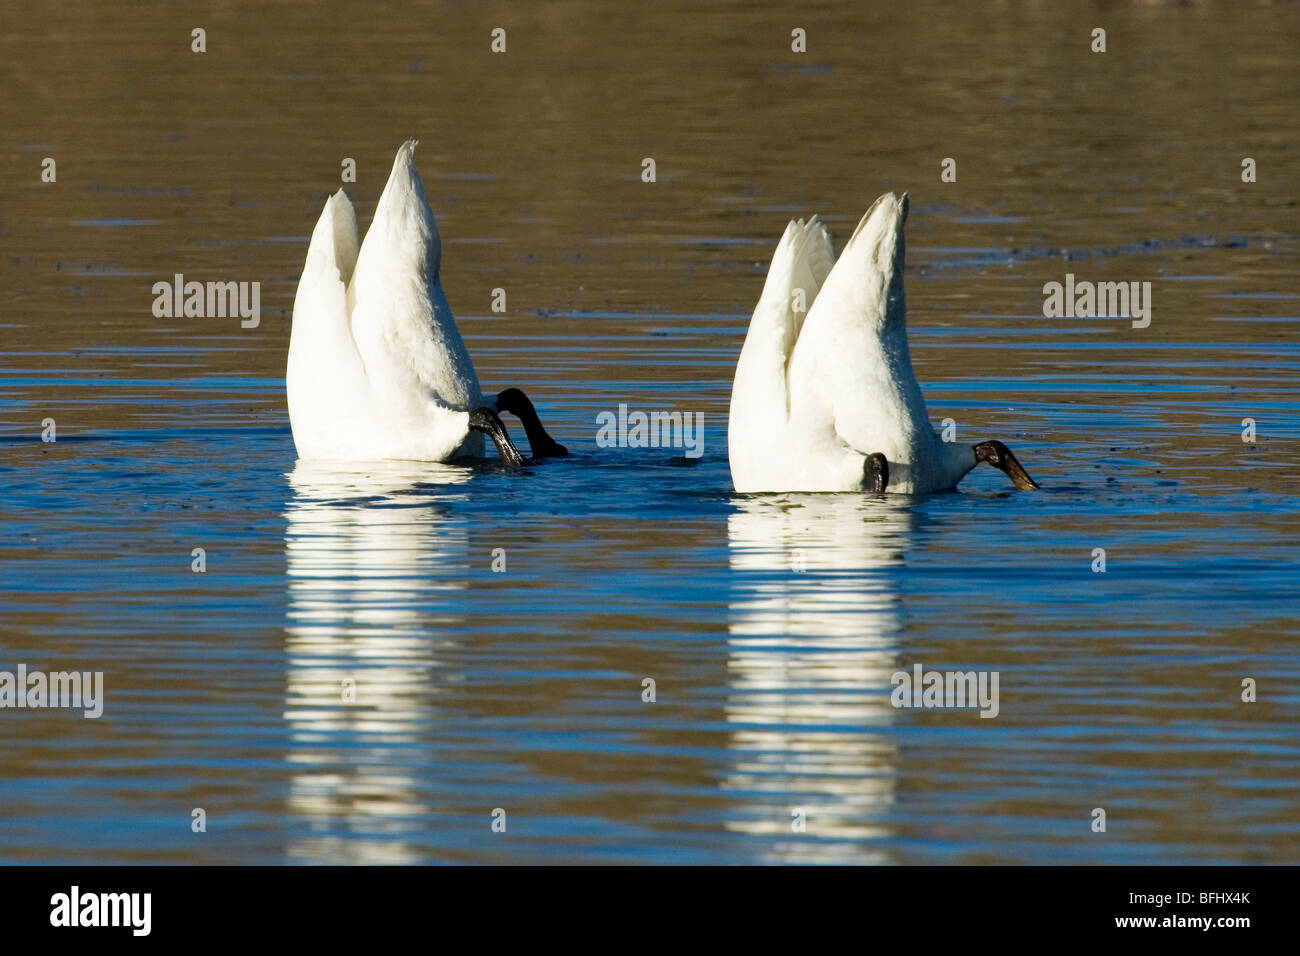 Trumpeter swans (Cygnus buccinator) feeding on roots and tubers in a shallow lake, central Alberta, Canada - Stock Image